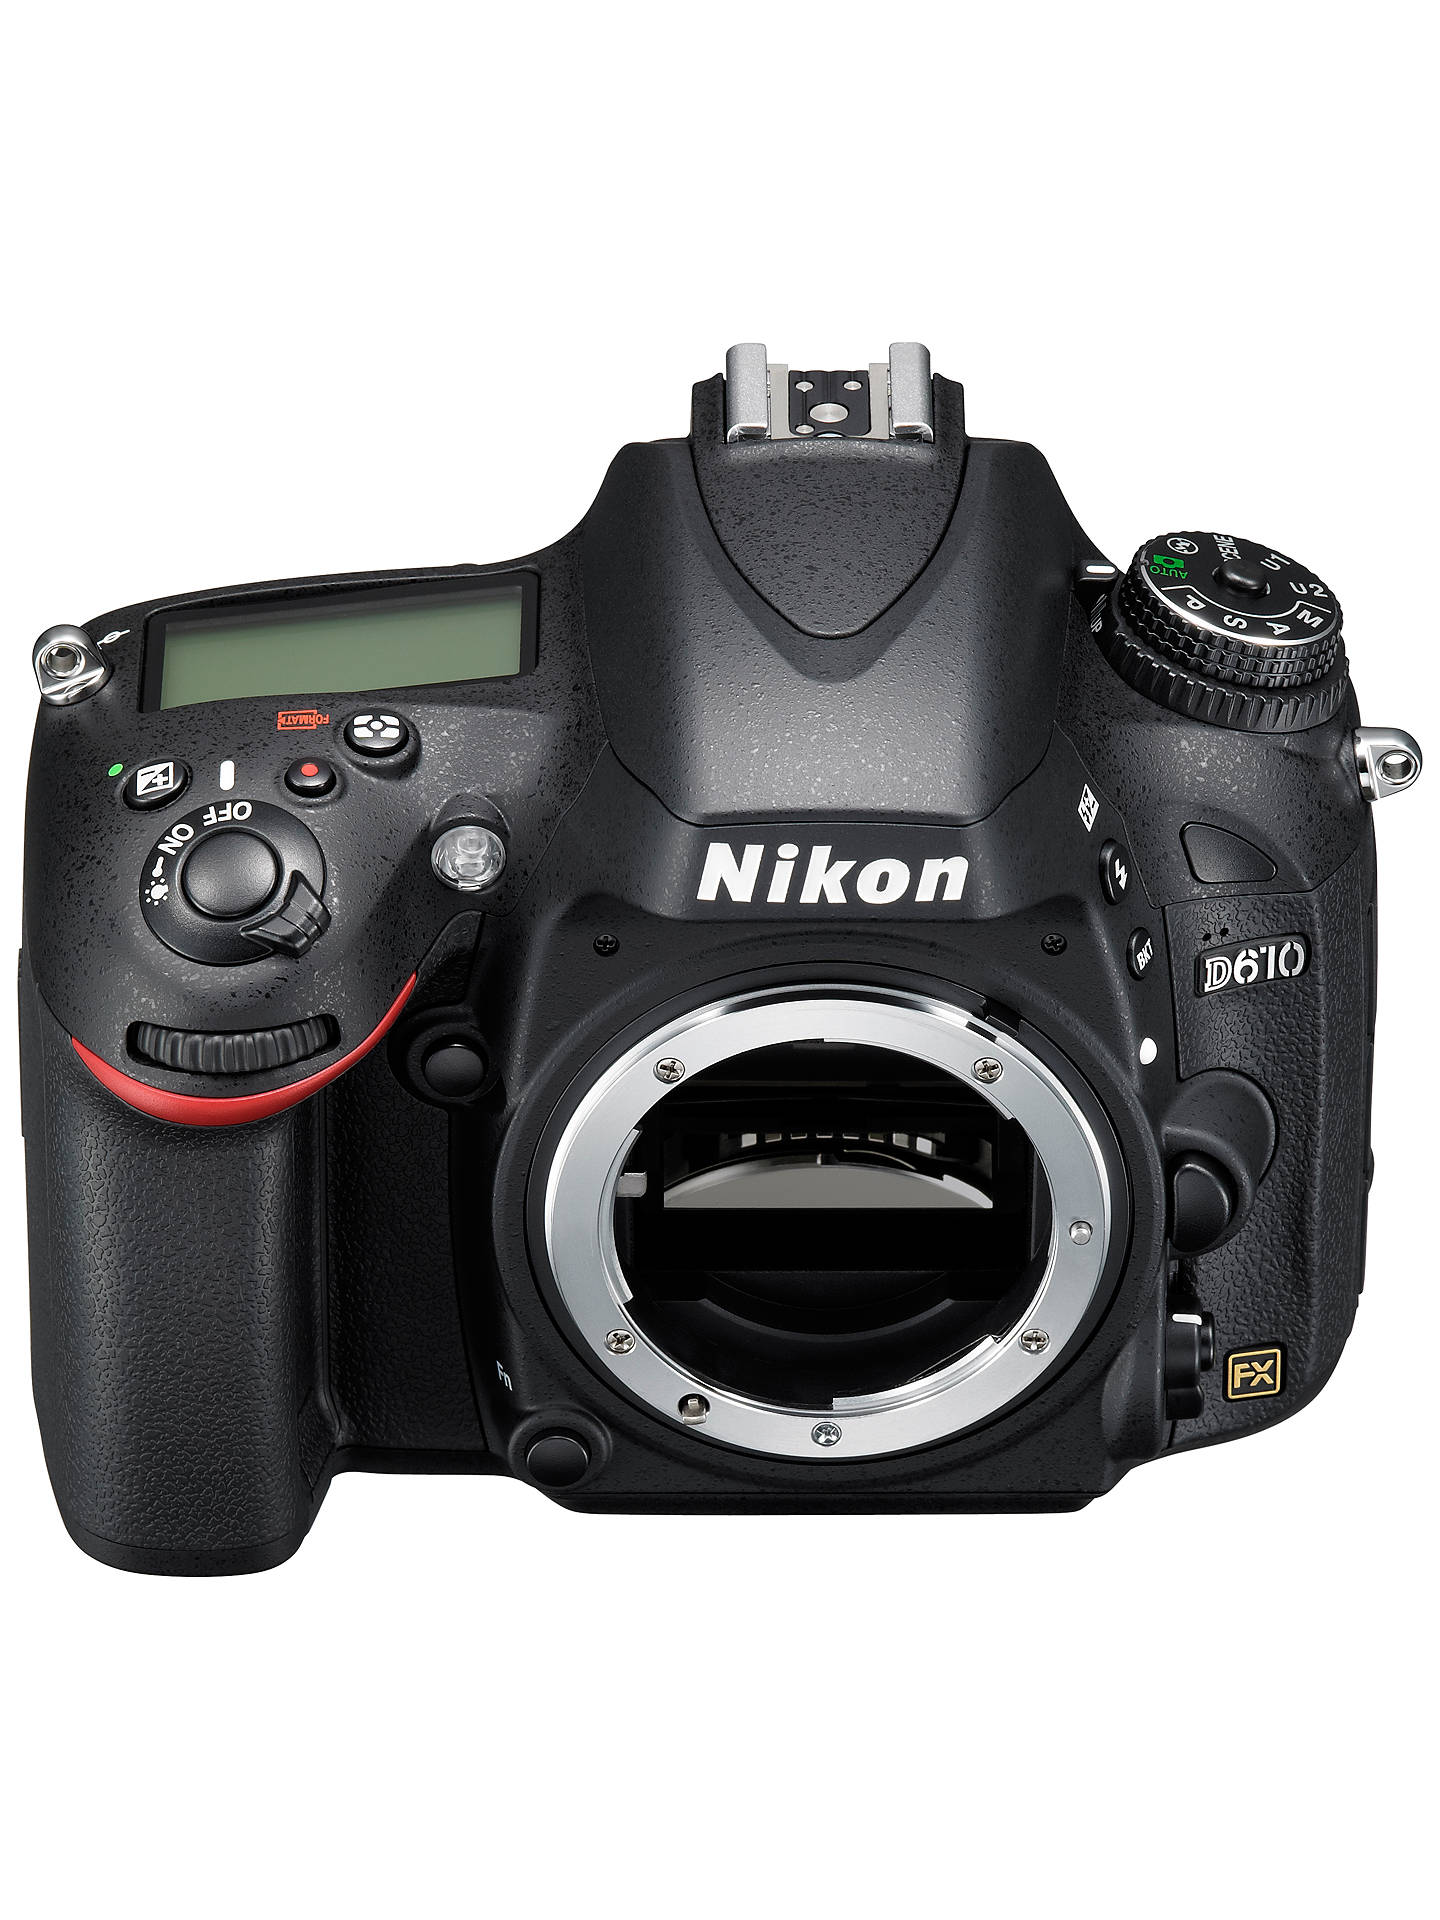 "Nikon D610 Digital SLR Camera, HD 1080p, 24 3MP, 3 2"" LCD"